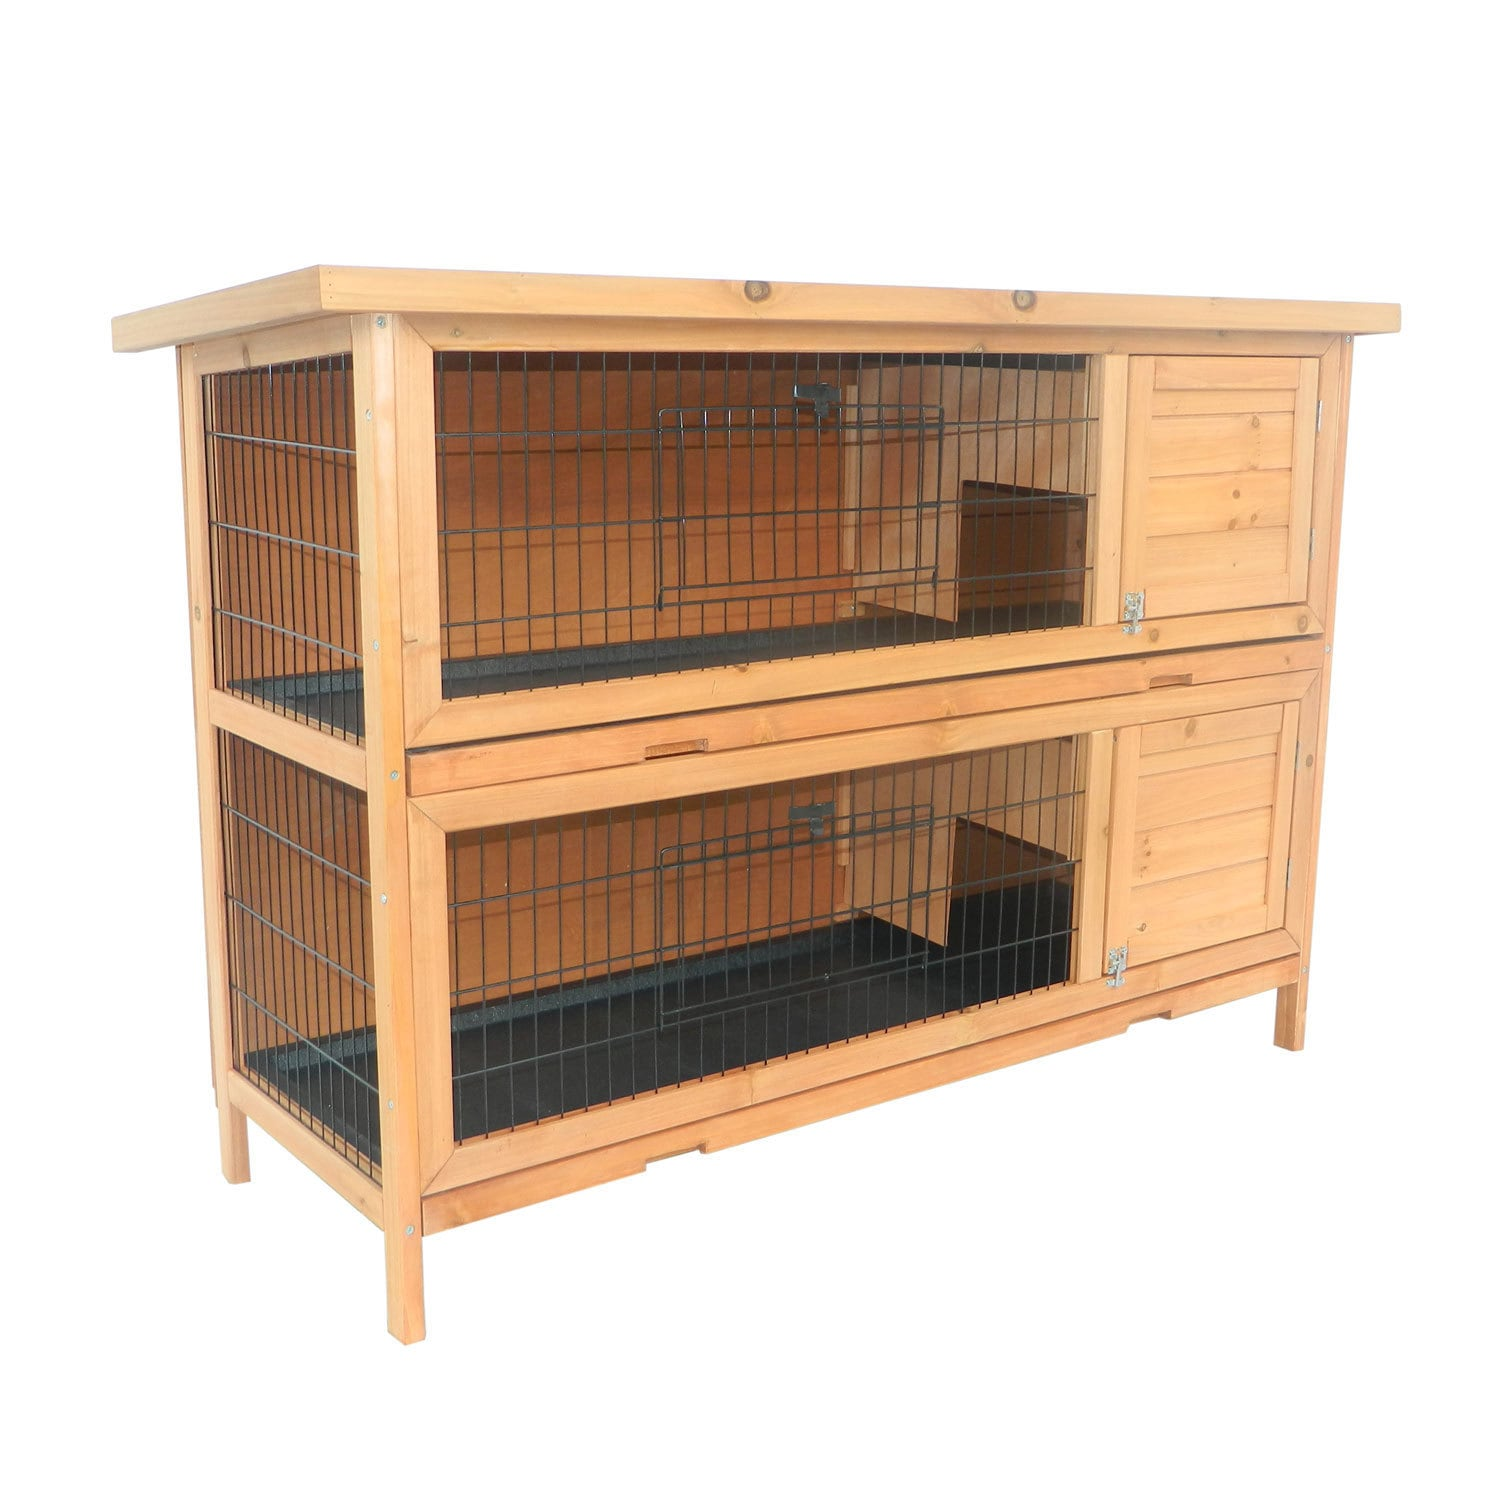 Shop Pawhut Brown Wood 2 Story Stacked Outdoor Rabbit Hutch And